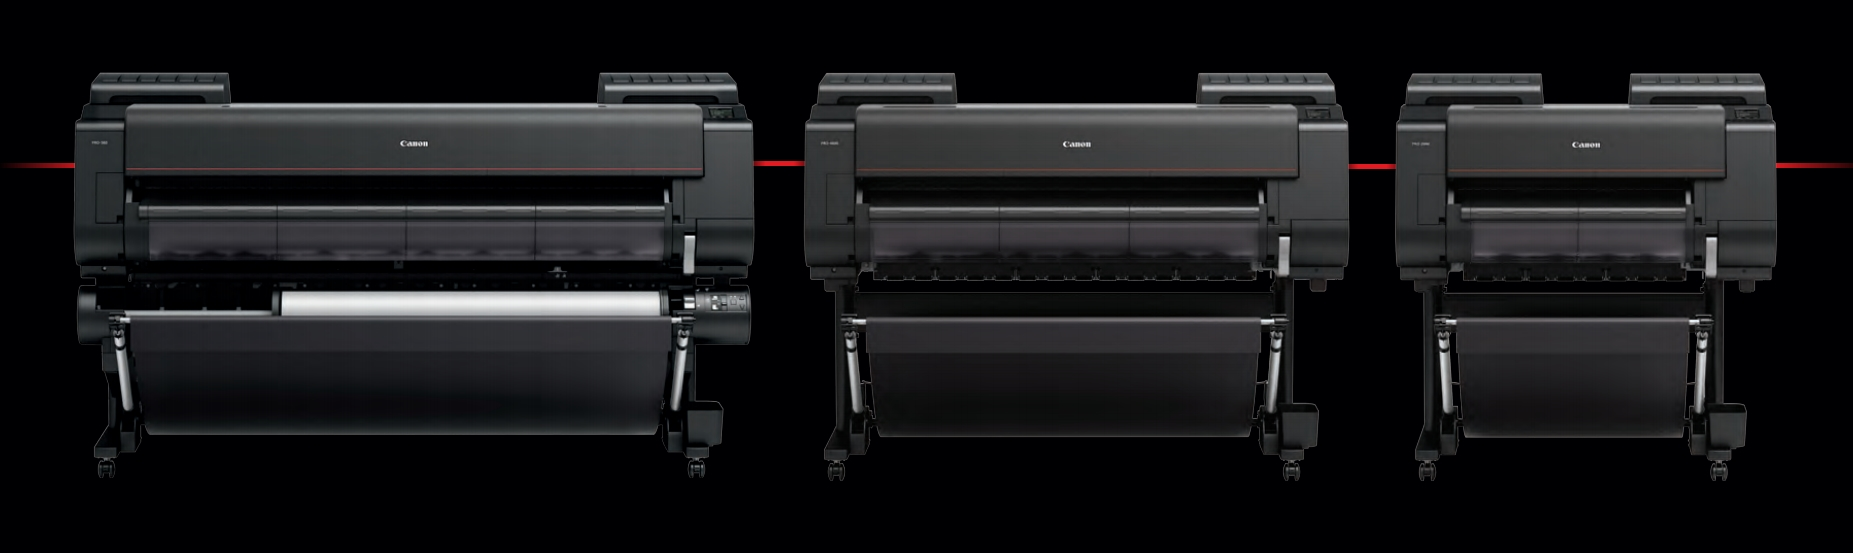 Canon imagePROGRAF PRO Series Plotter Printers